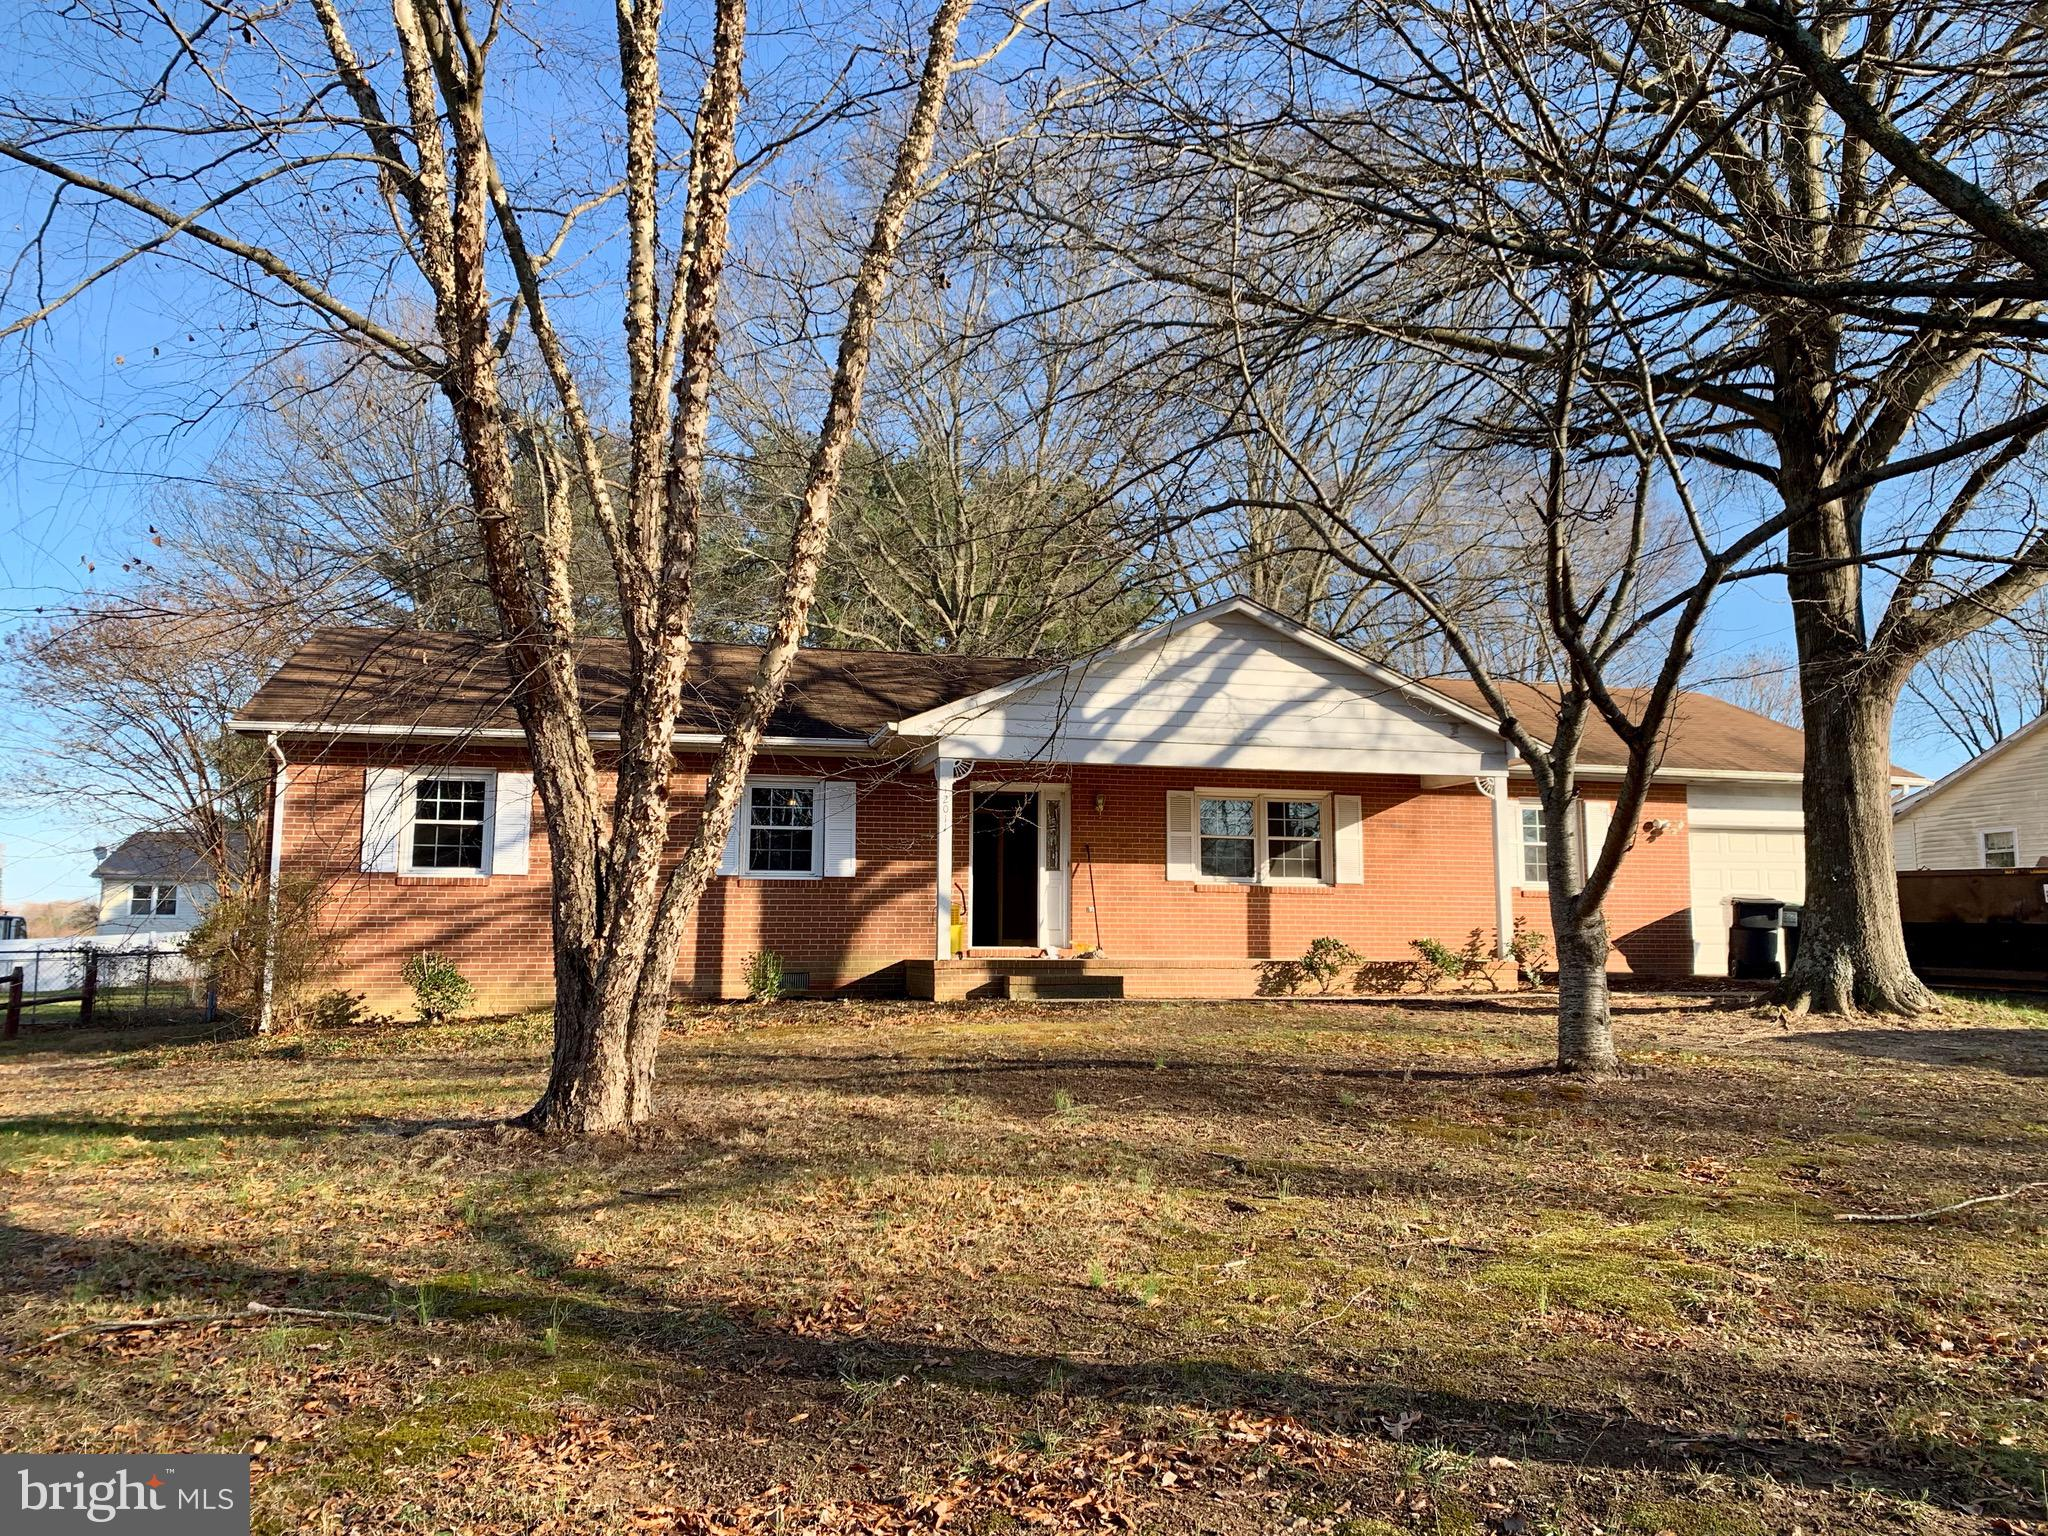 """Solid Brick Rambler in a Terrific Location! Being sold """"As Is"""" This home has some great features, but just needs a little TLC. Some  features are beautiful Hardwood Floors and Crown Molding throughout,  the Master Bath was totally renovated in Dec. of 2019. Also, all windows have been updated.  Wonderful 30' x 30' Detached Garage w/ Electricity and Storage above! Chain Link Fence around most of the Beautiful Backyard, which has Over 5000 Flower Bulbs planted! So Much Potential with this Home!!!"""